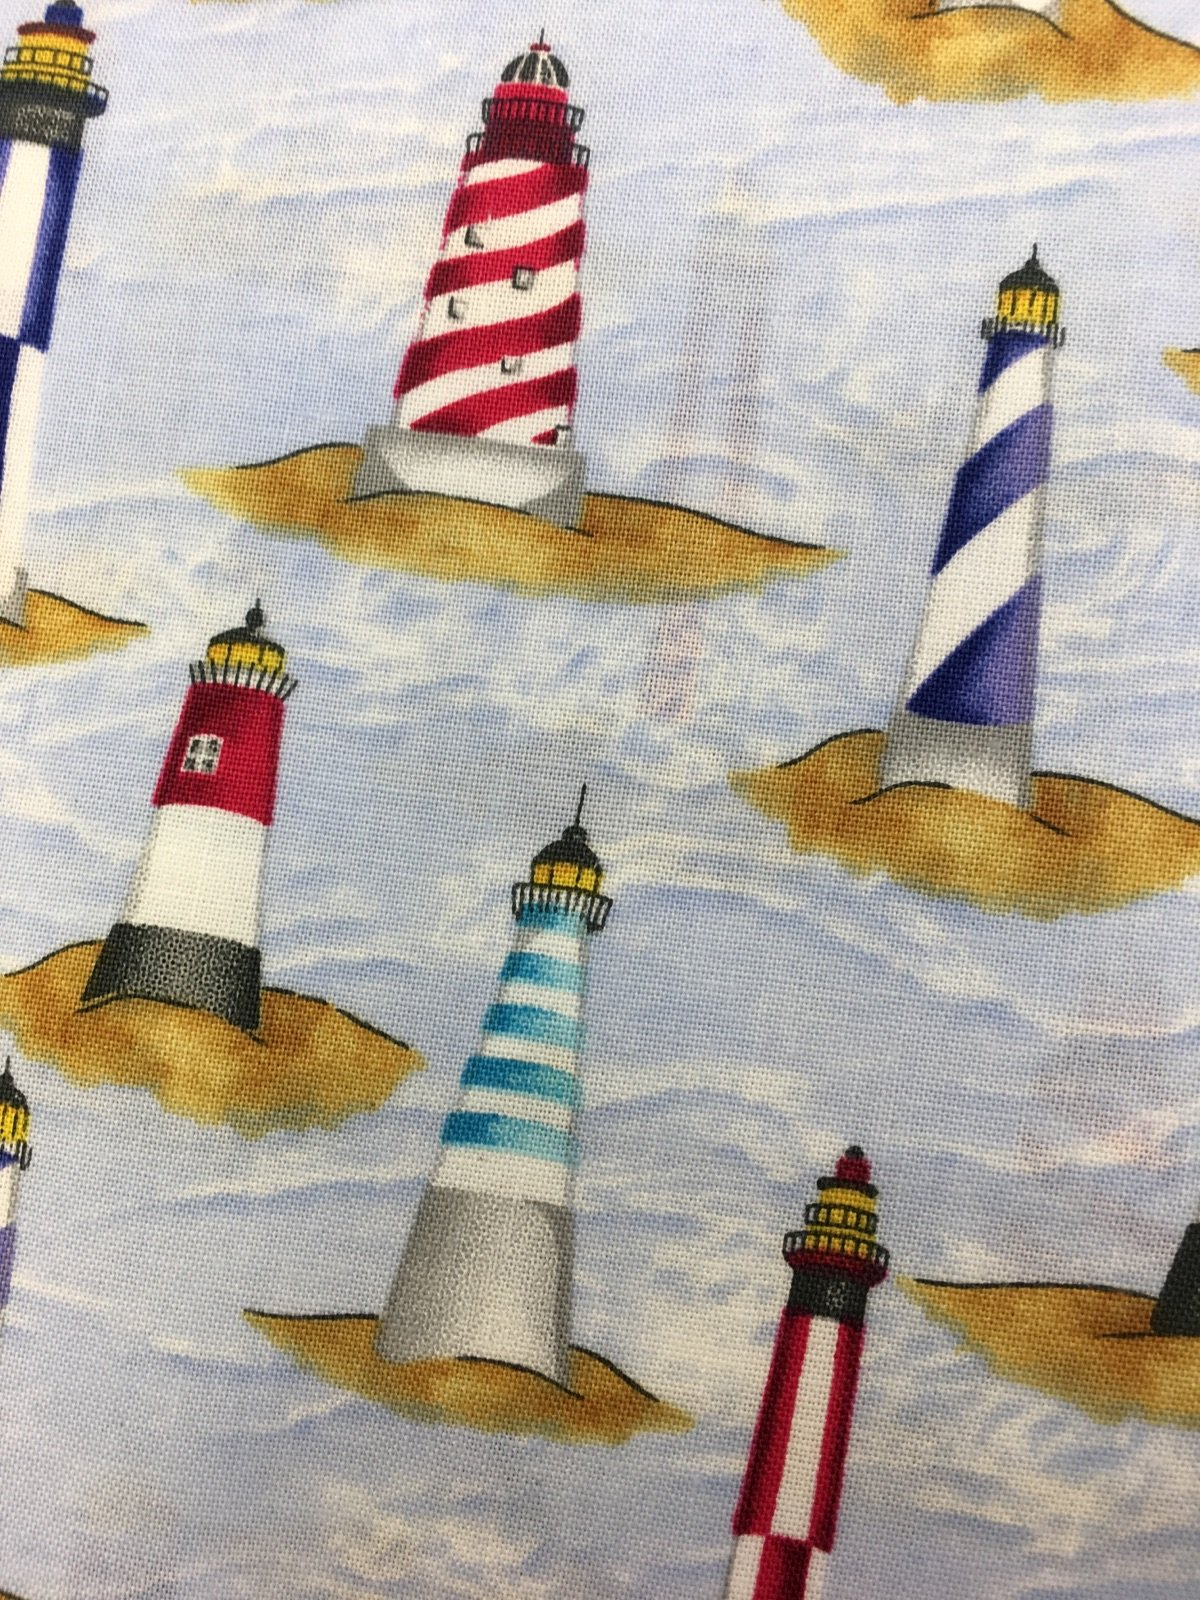 By The Sea Light Houses 5245-11